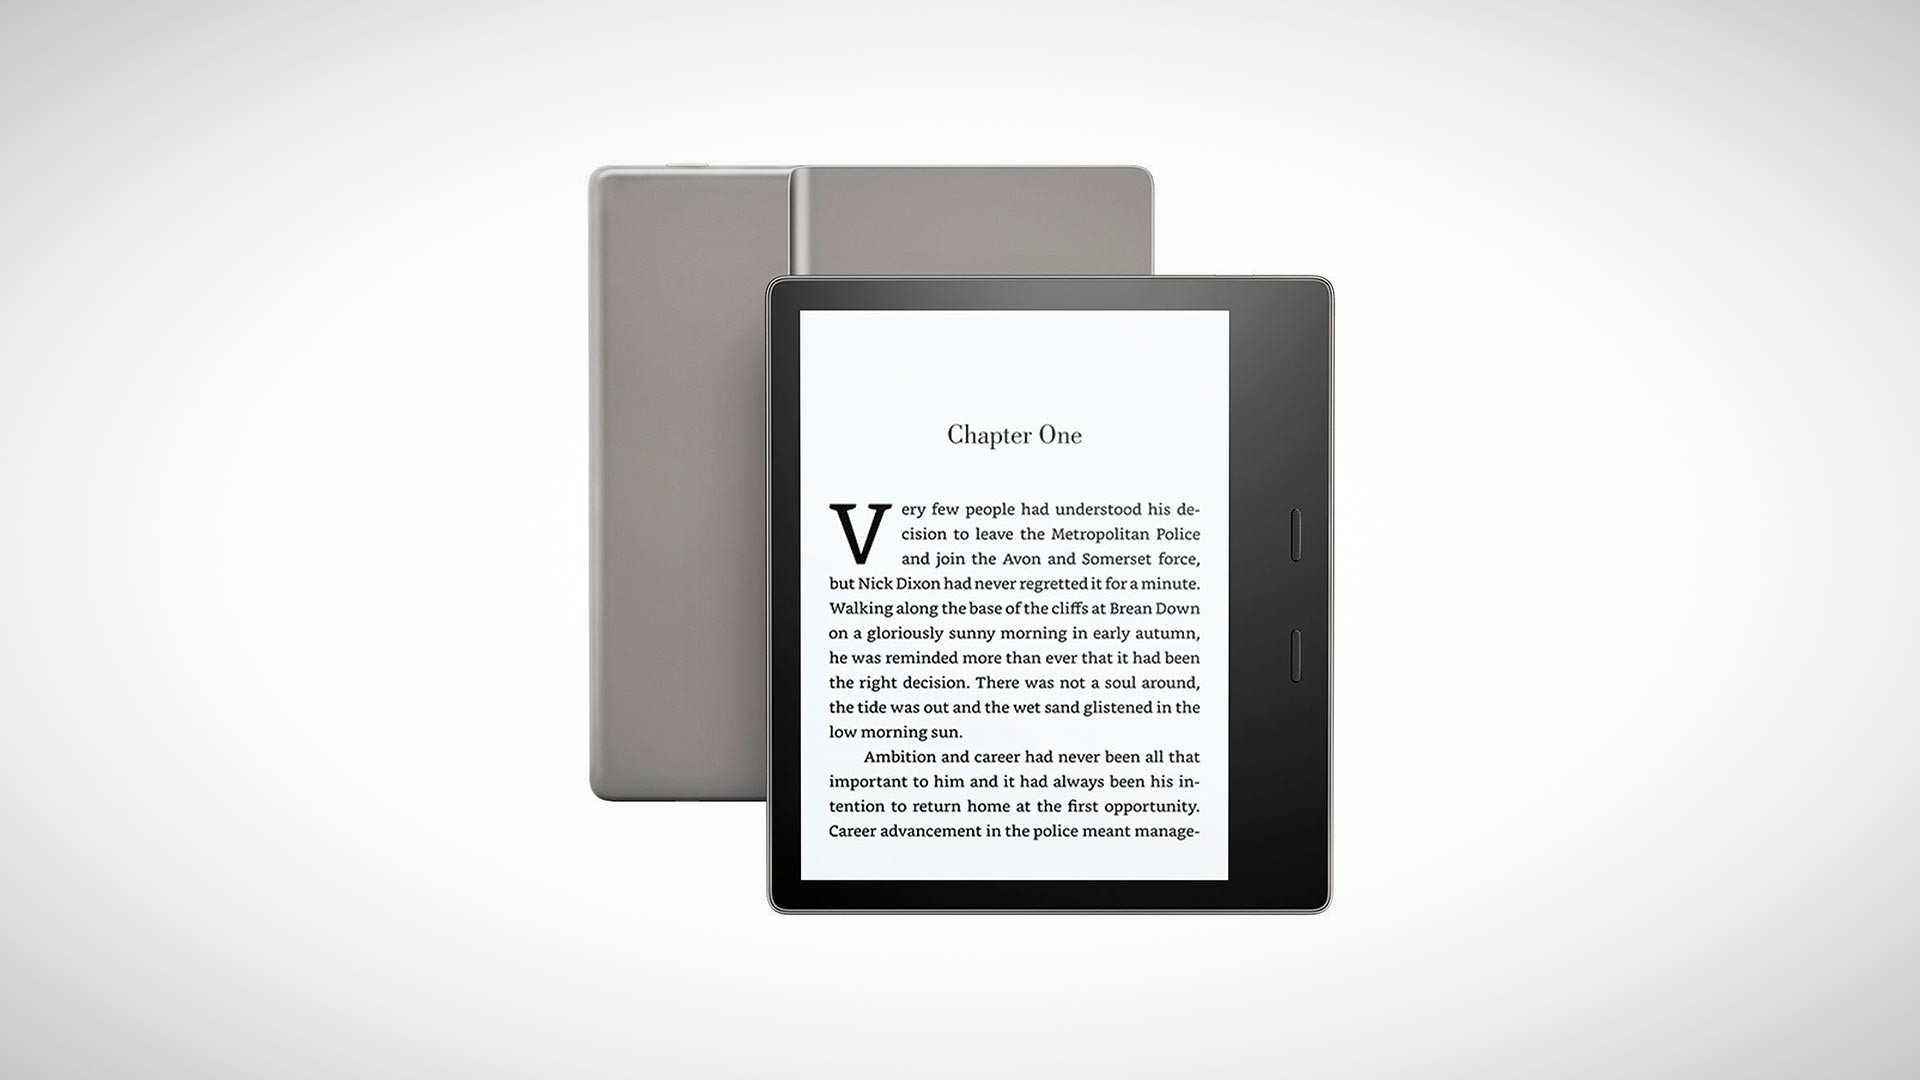 The all-new Kindle Oasis e-reader for Christmas 2017